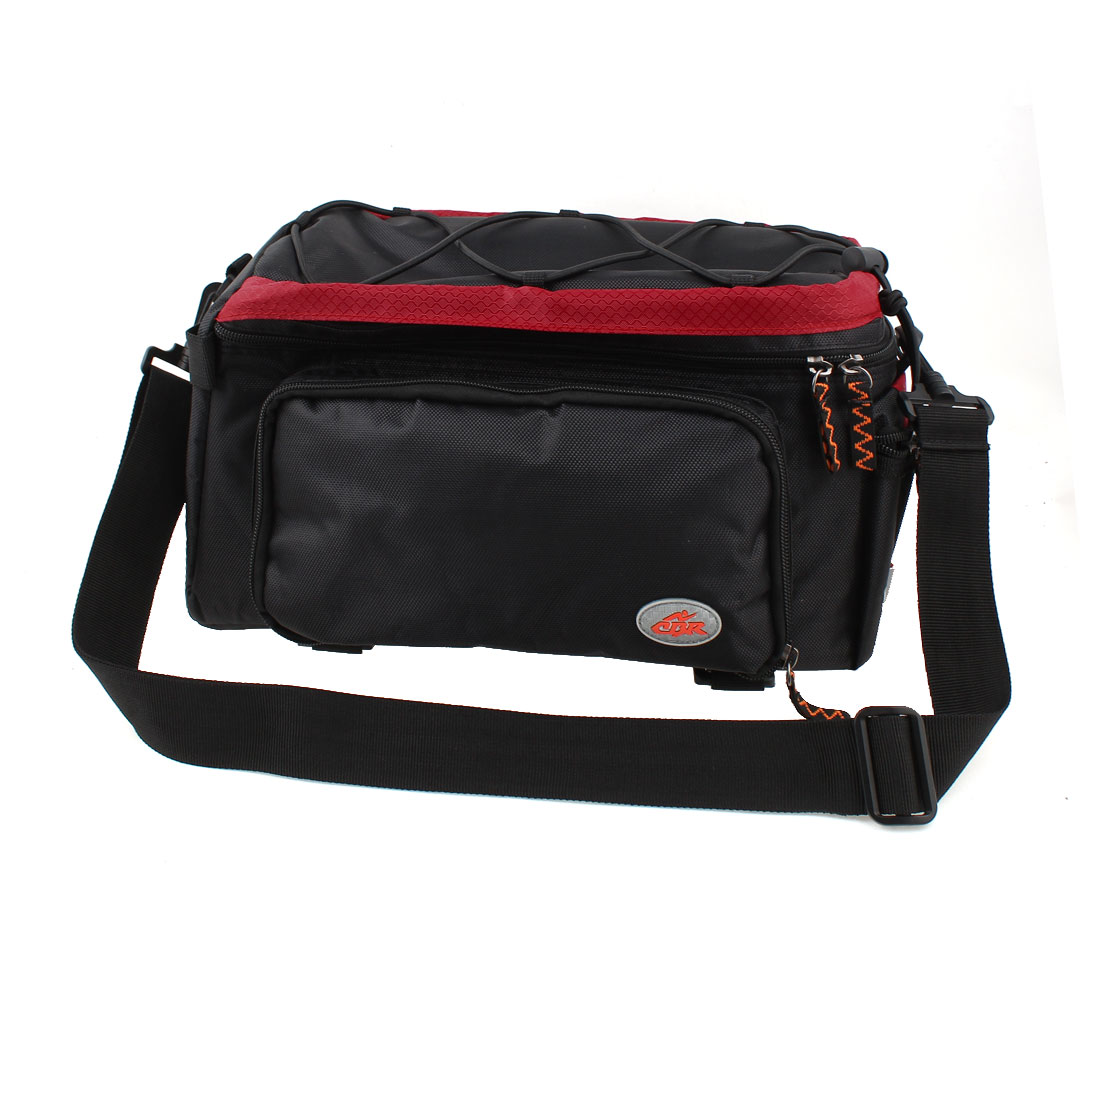 Cycling Bike Bicycle Pannier Rear Seat Bag Shoulder Handbag Black Red